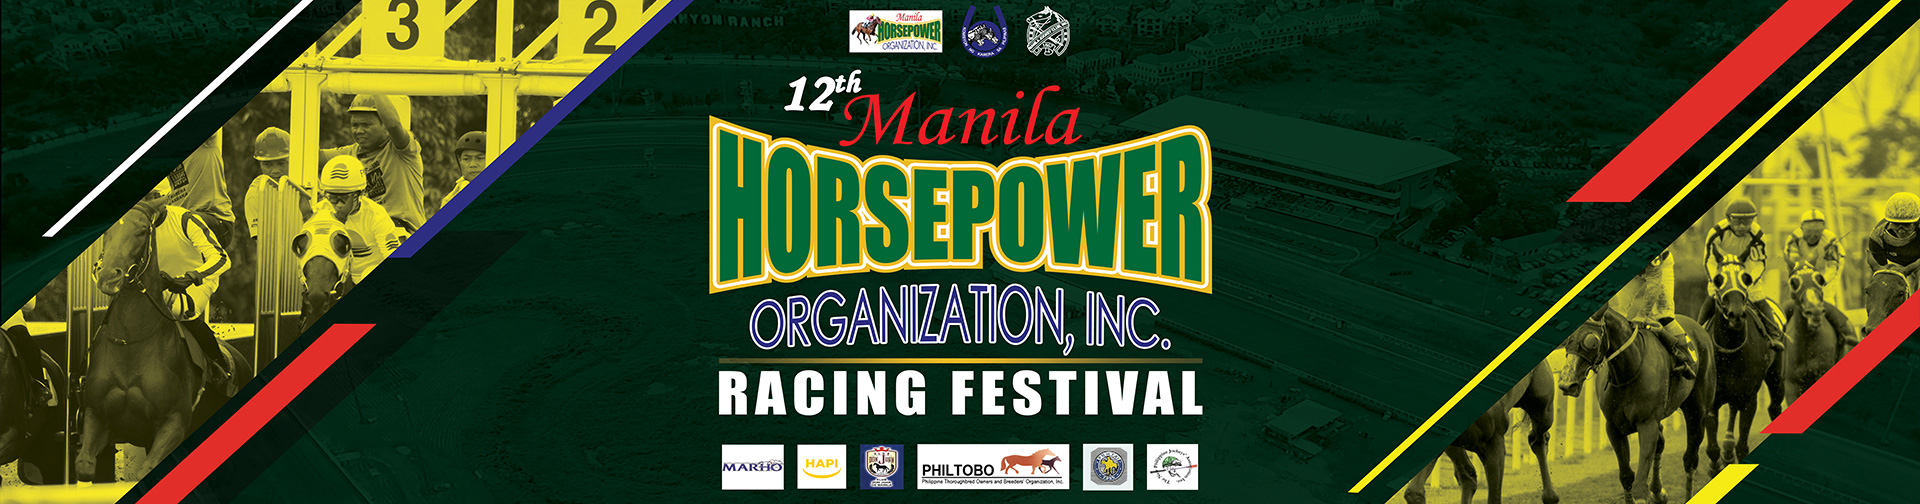 12TH MANILA HORSEPOWER ORG INC RACING FESTIVAL